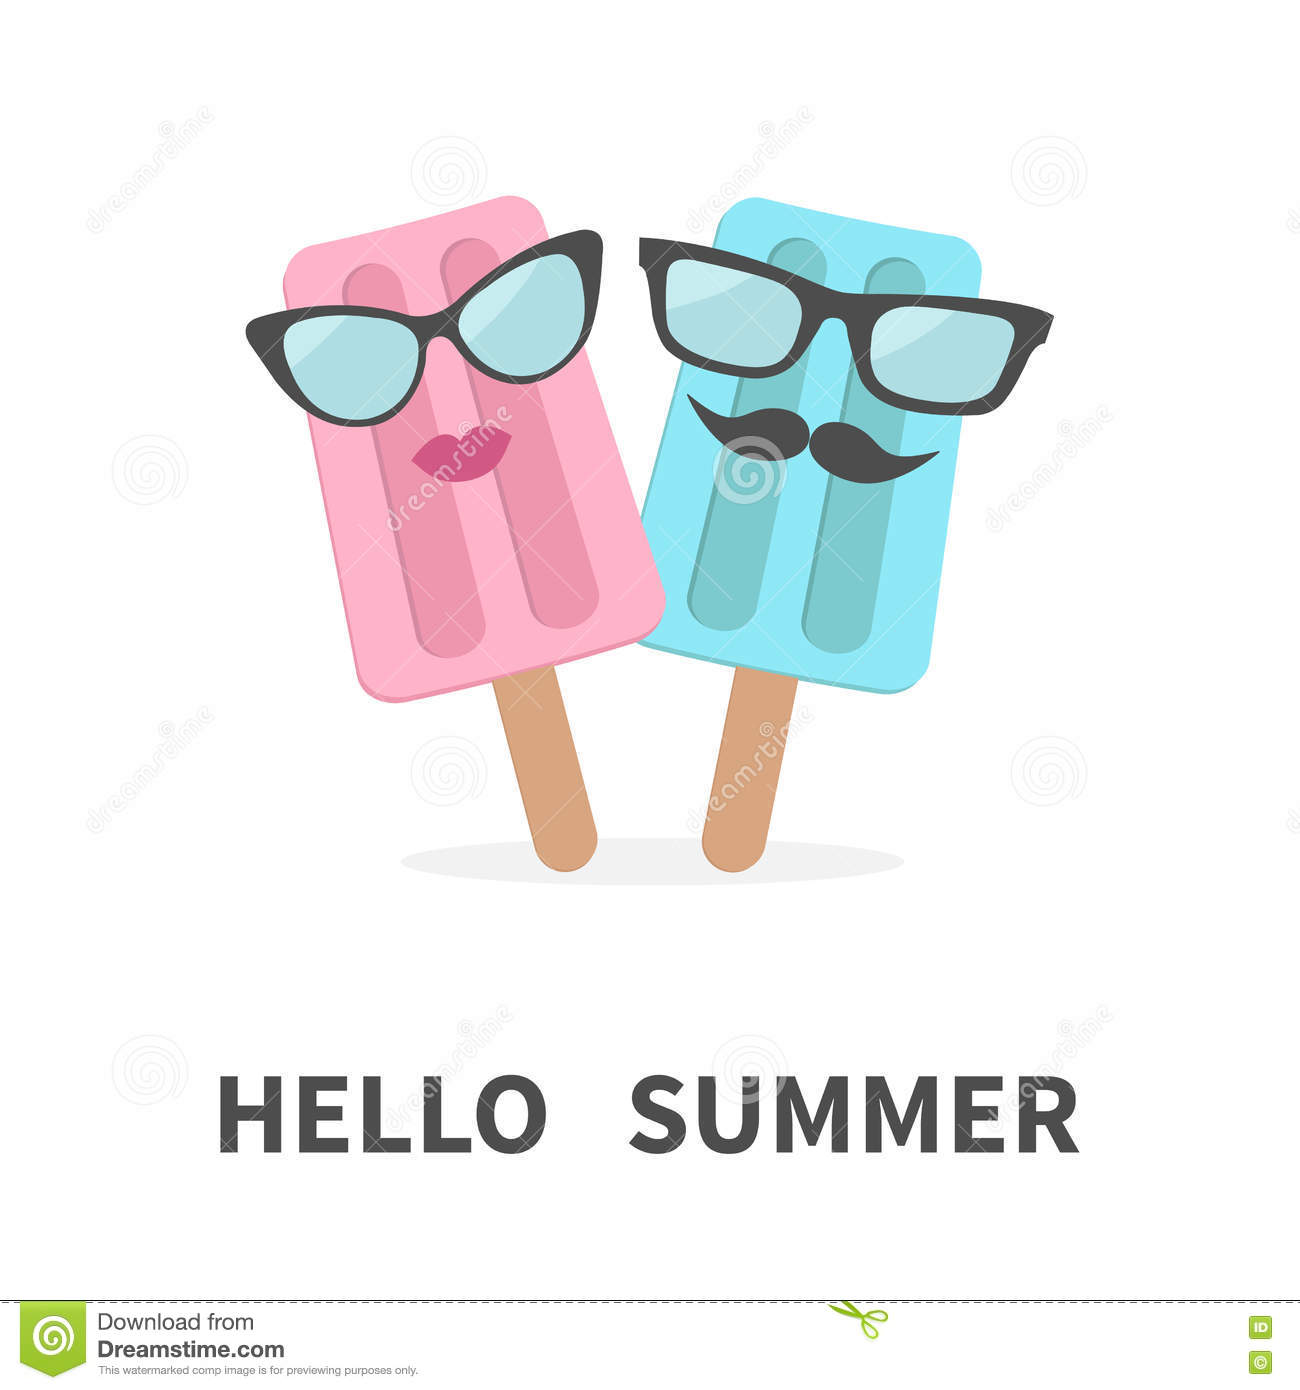 Fresh Ice Cream Stick In Summer Wallpaper Vector: Ice Cream Couple With Lips, Mustaches And Eyeglasses